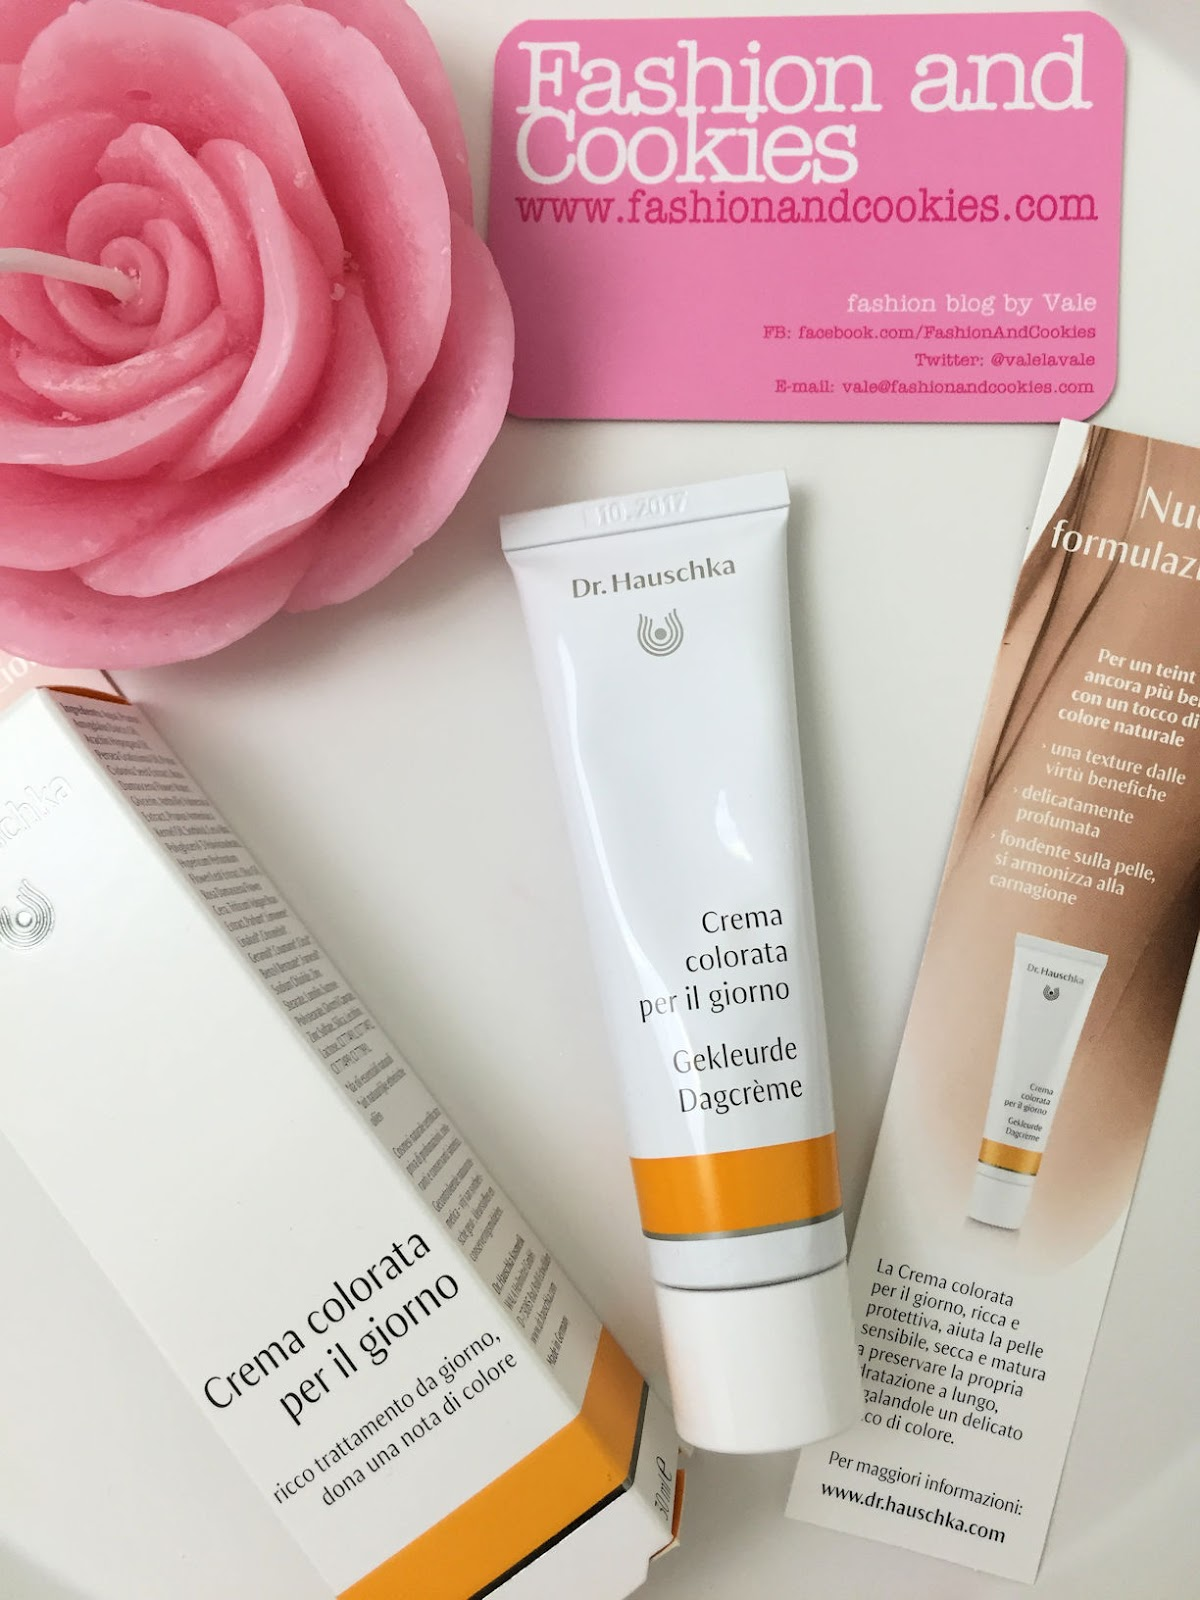 Dr. Hauschka tinted day cream new formula, crema colorata per il giorno, review on Fashion and Cookies beauty blog, beauty blogger